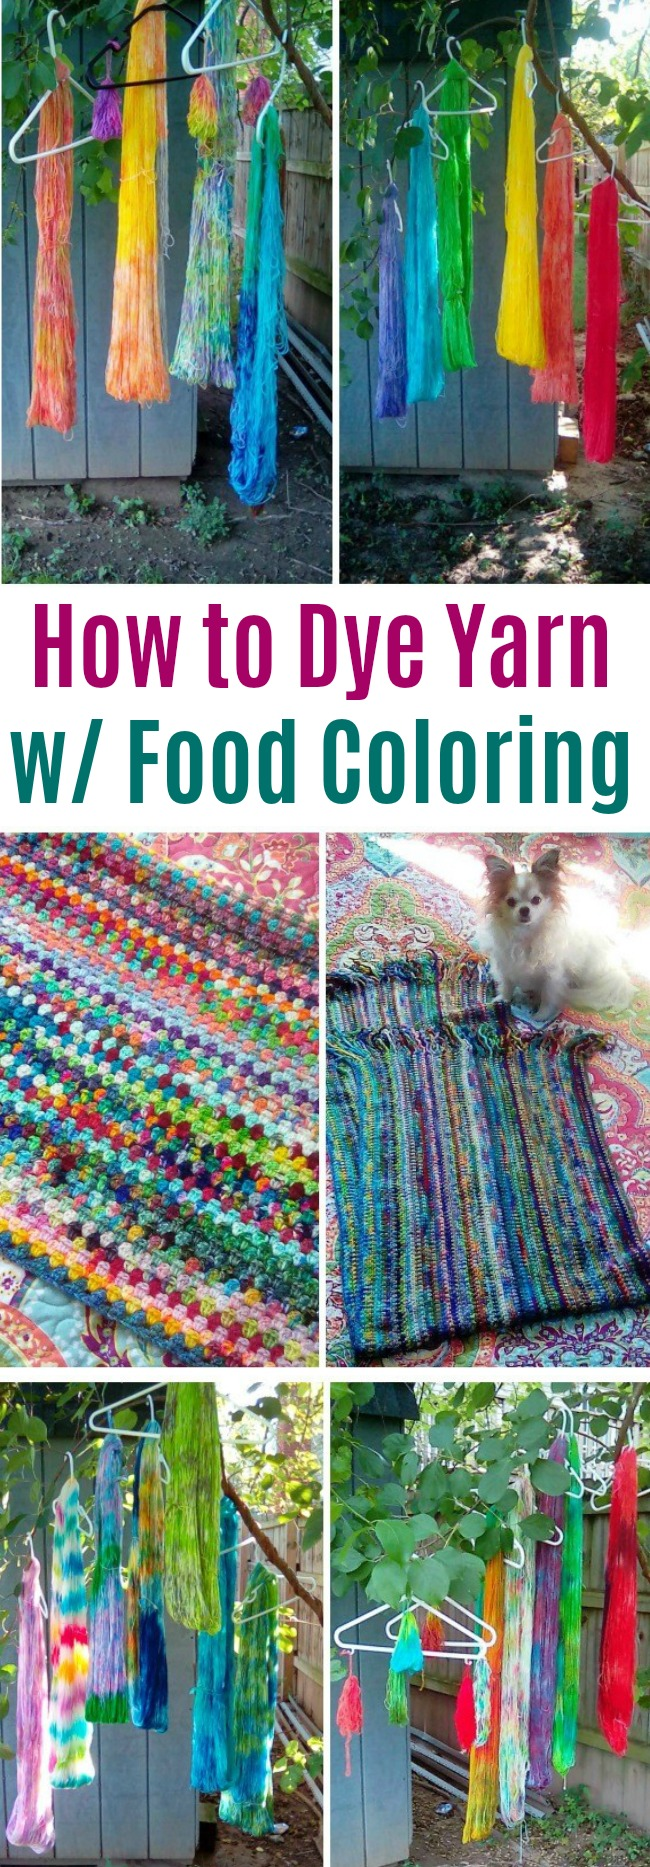 Show Me Your Hobby – Vicki Shares How She Dyes Yarn with Food Coloring